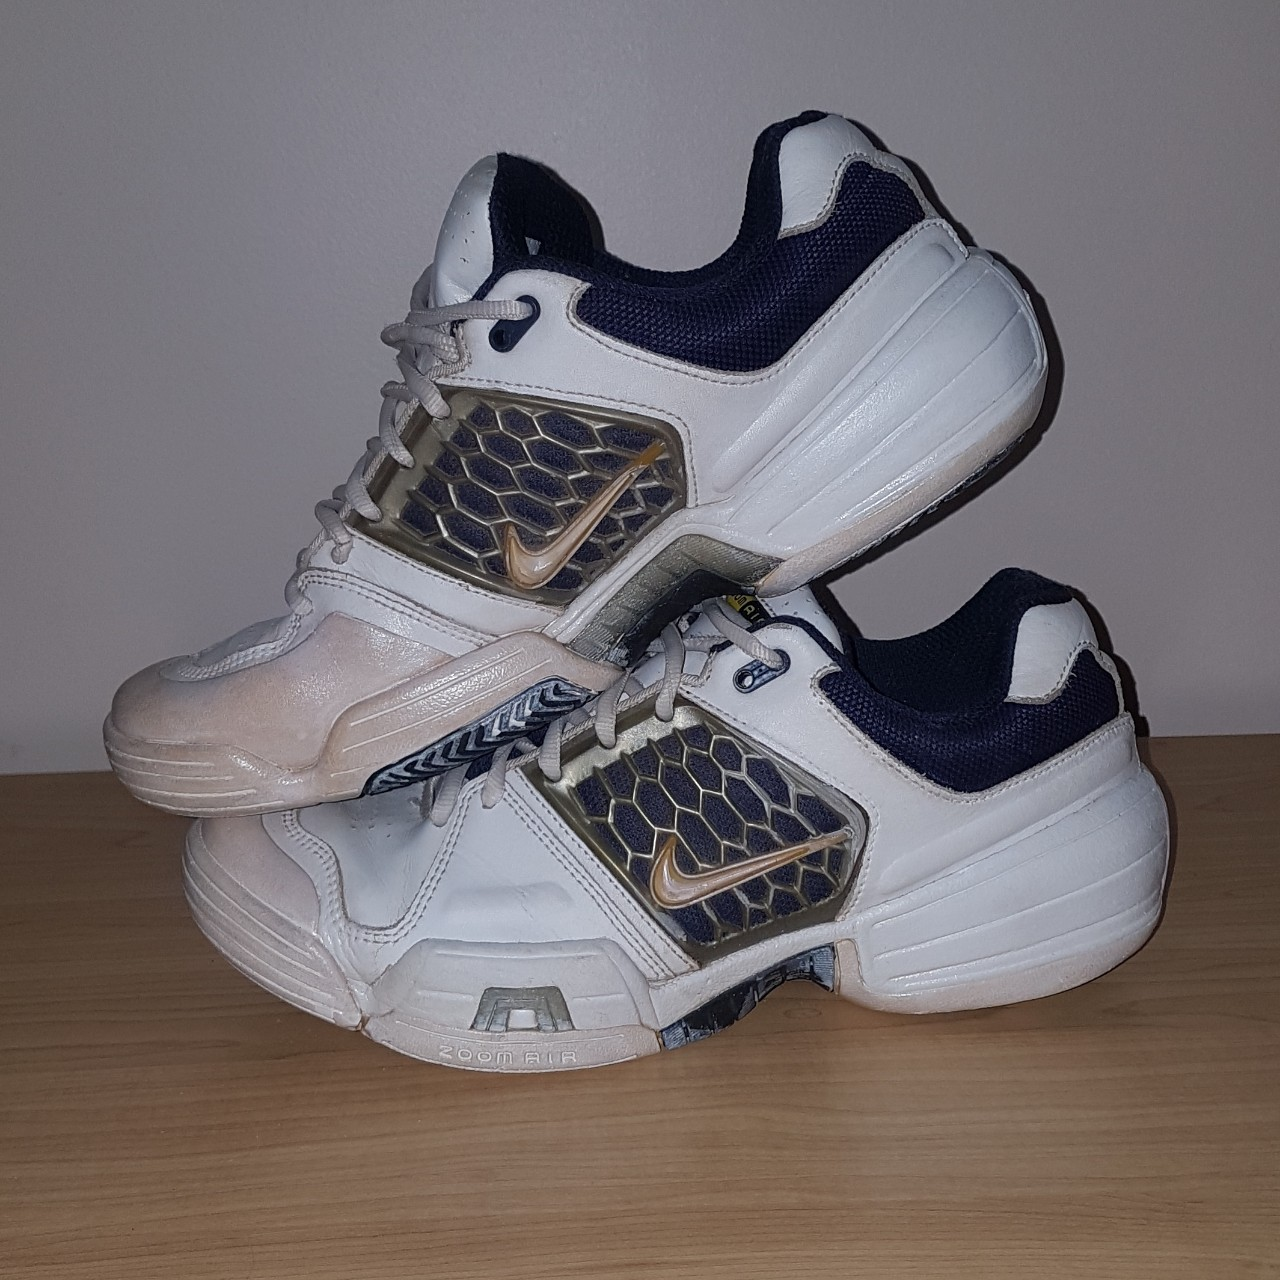 Details about Vintage Nike Air 90s Cross Training Womens 9 Shoes